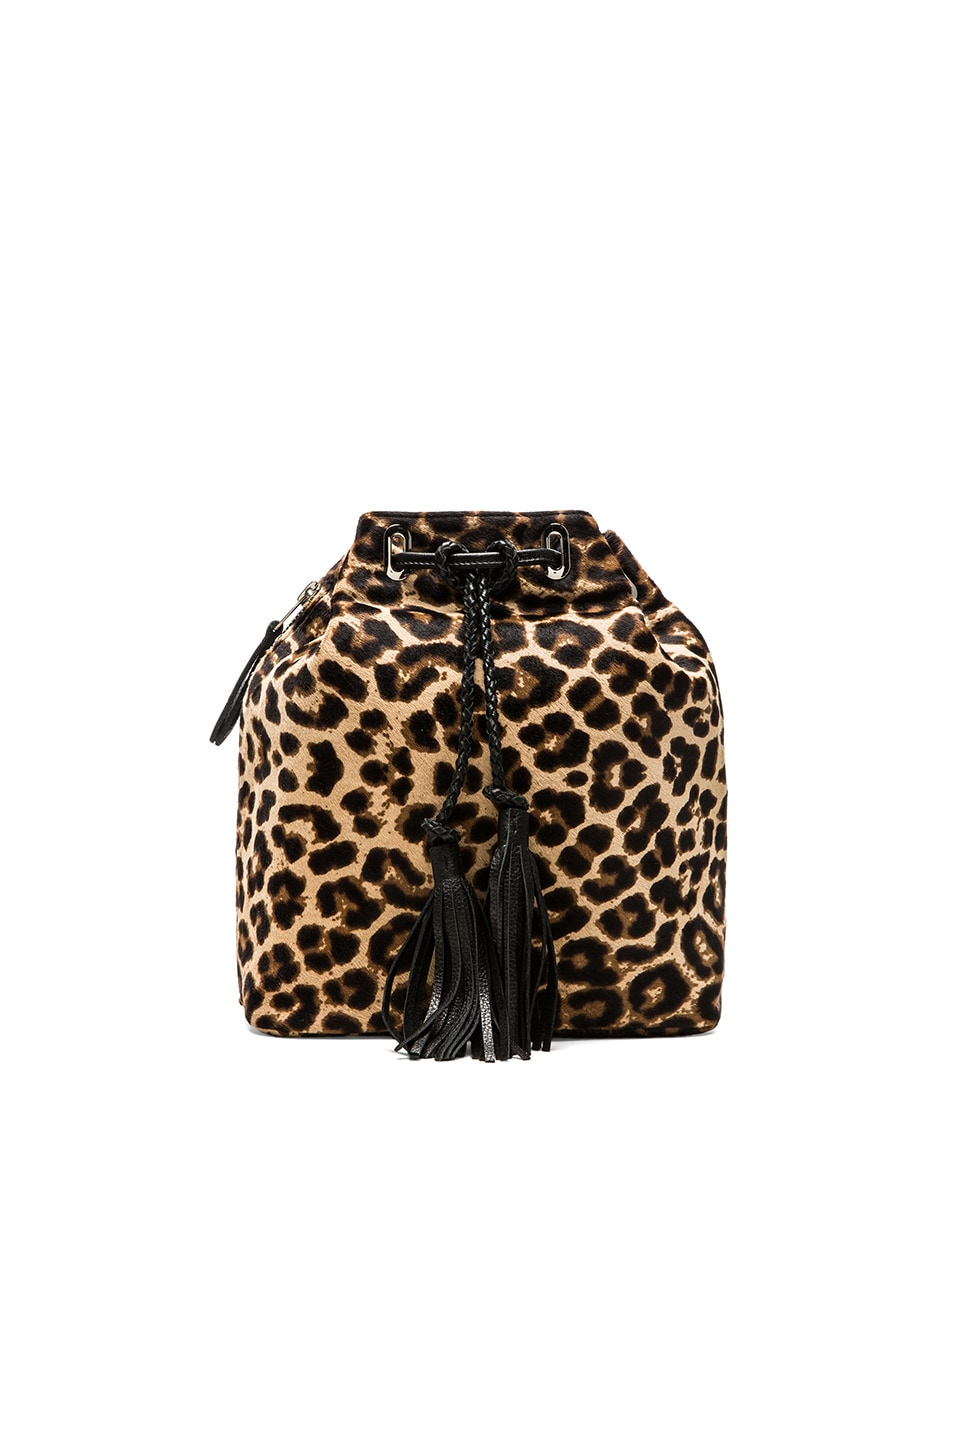 Simone Camille The Midi Bucket Bag in Jaguar Print